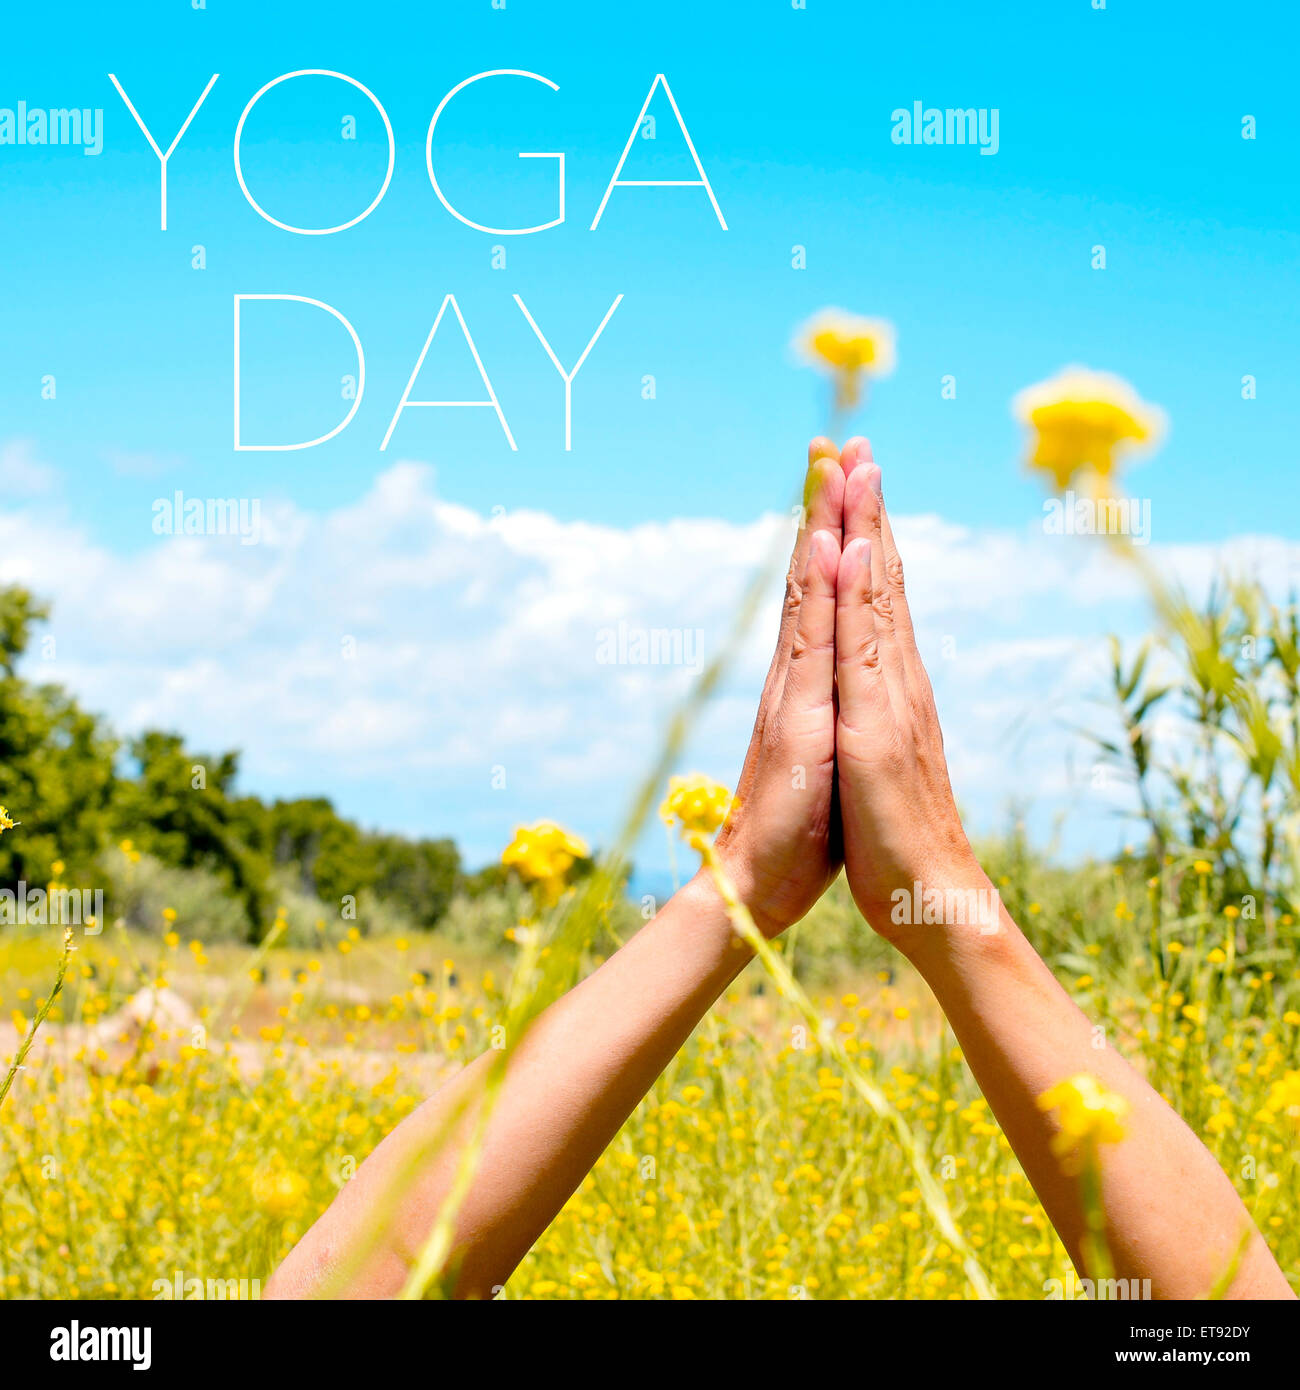 closeup of the hands of a young caucasian yogi man meditating outdoors in anjali mudra and the text yoga day - Stock Image